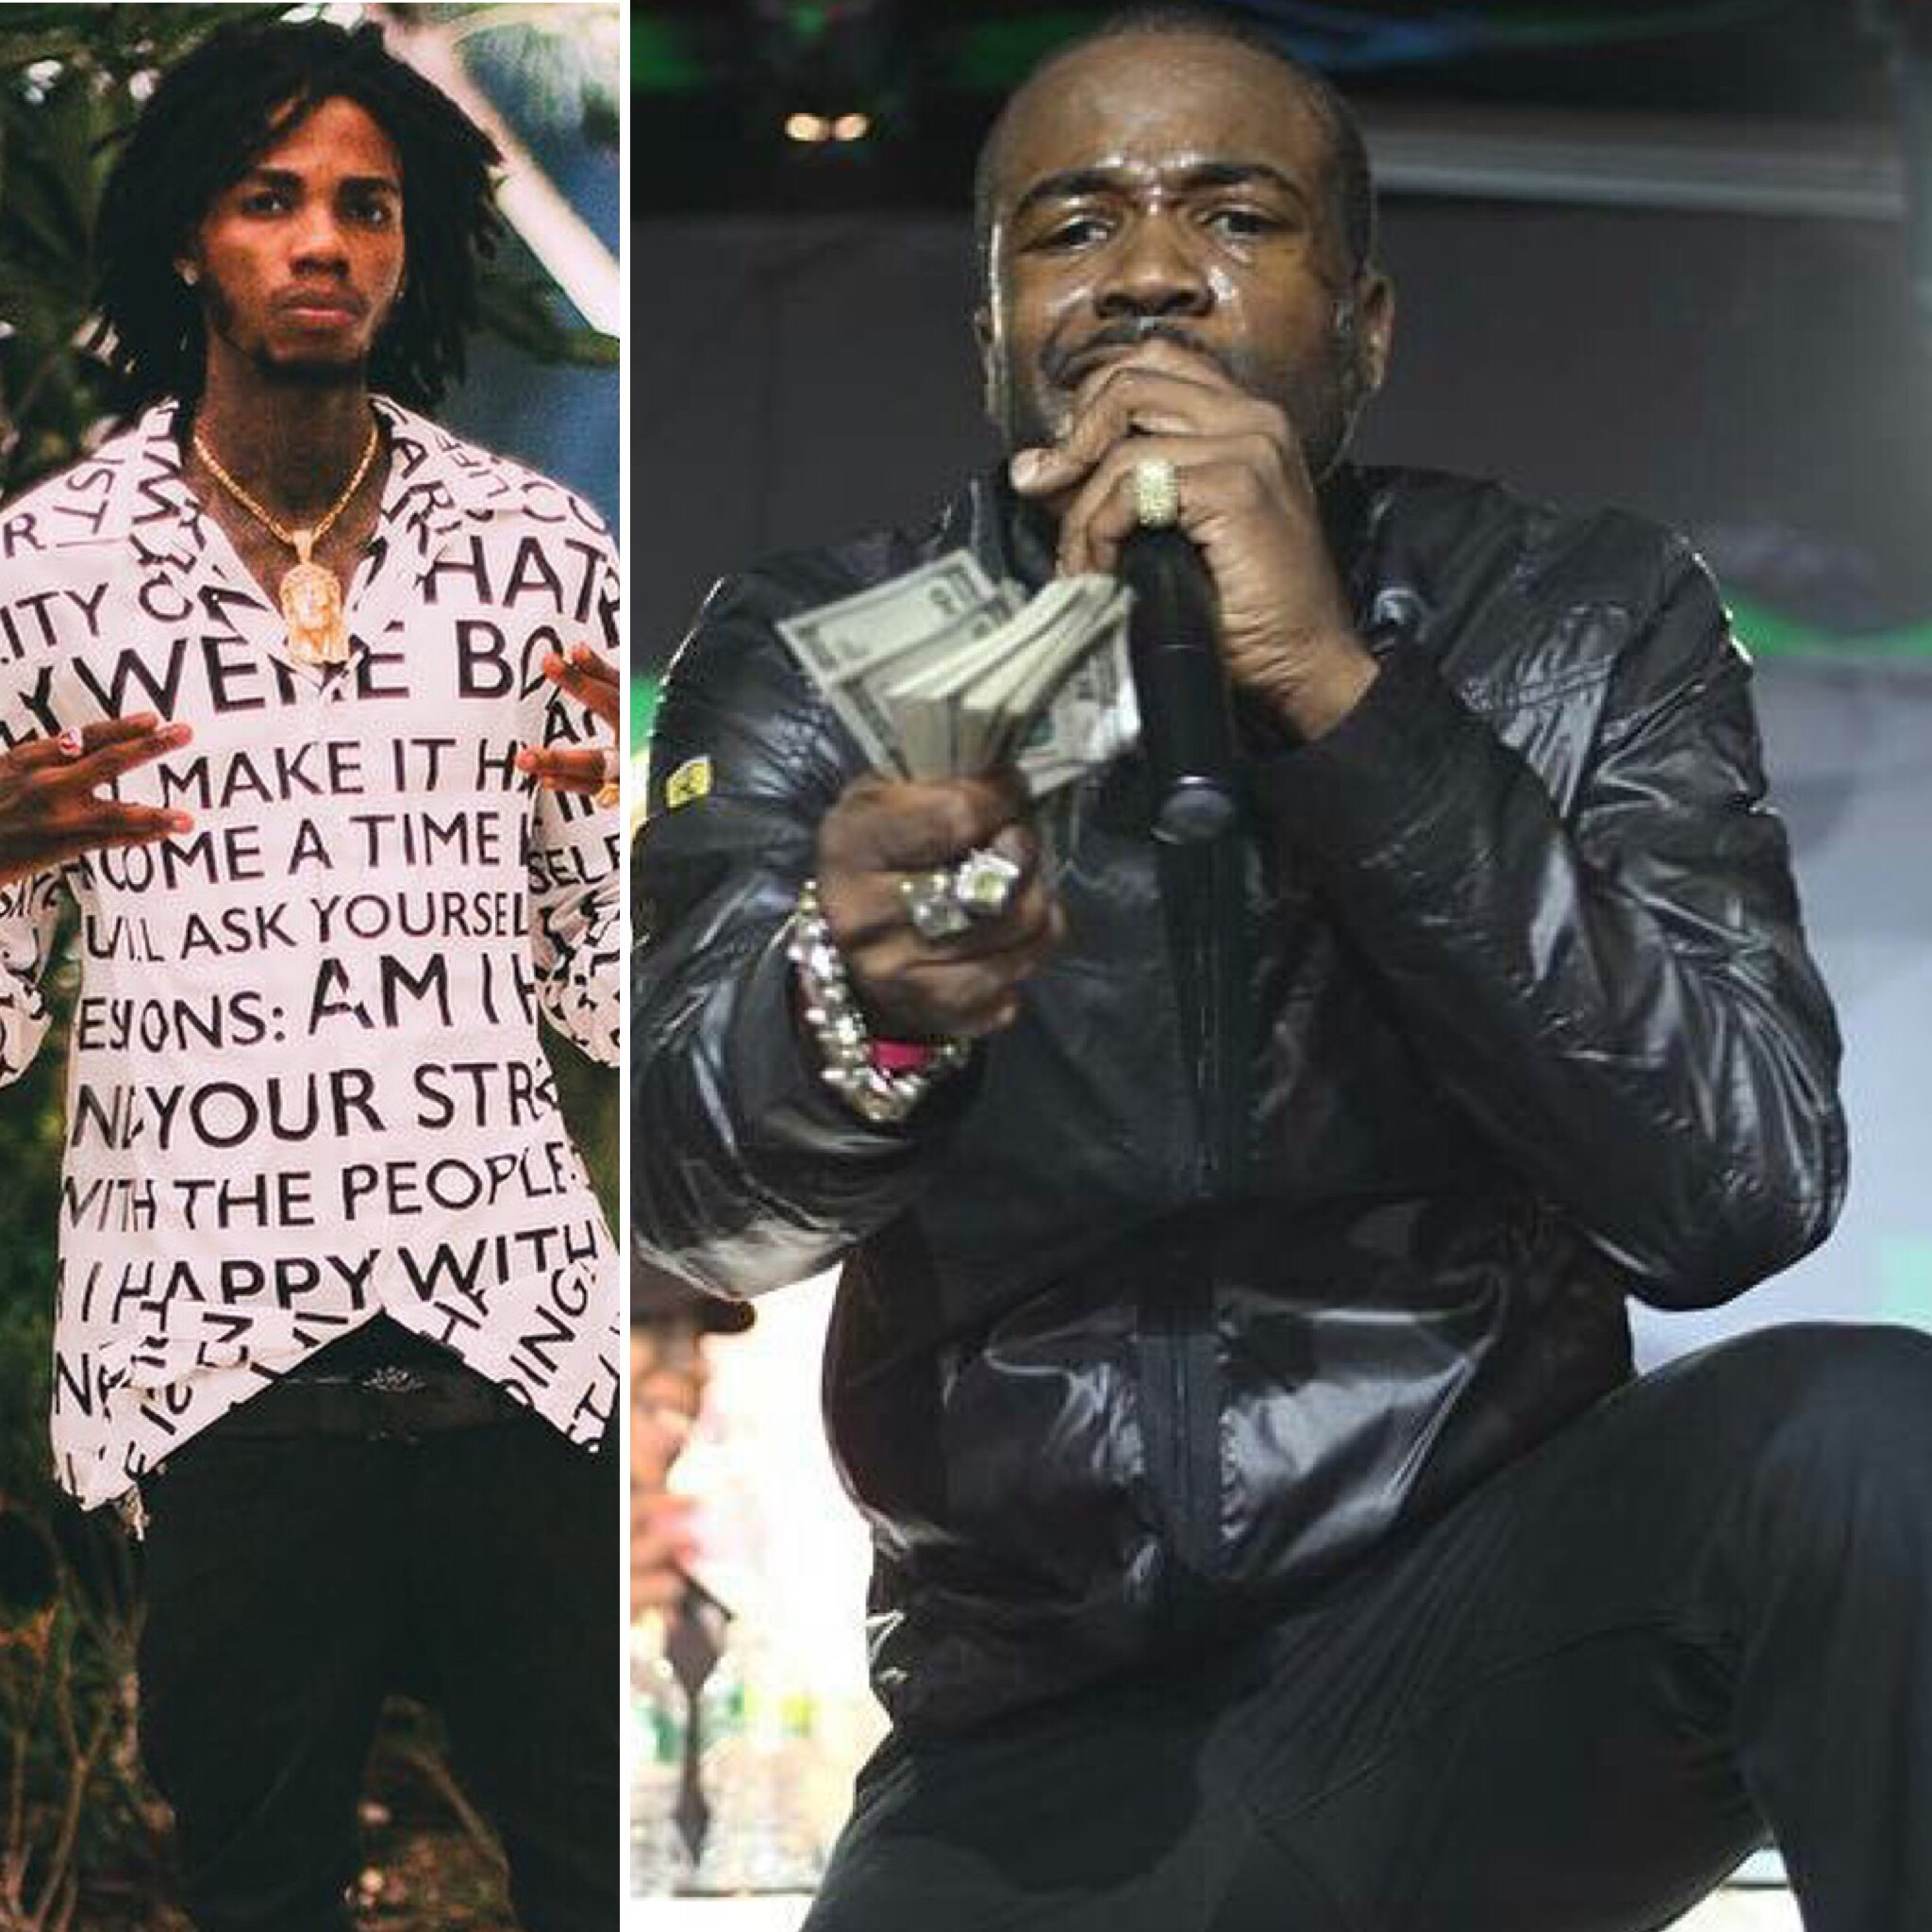 Fire Links States He Plays All Artistes, Not Alkaline Alone Viral Video Was Spliced